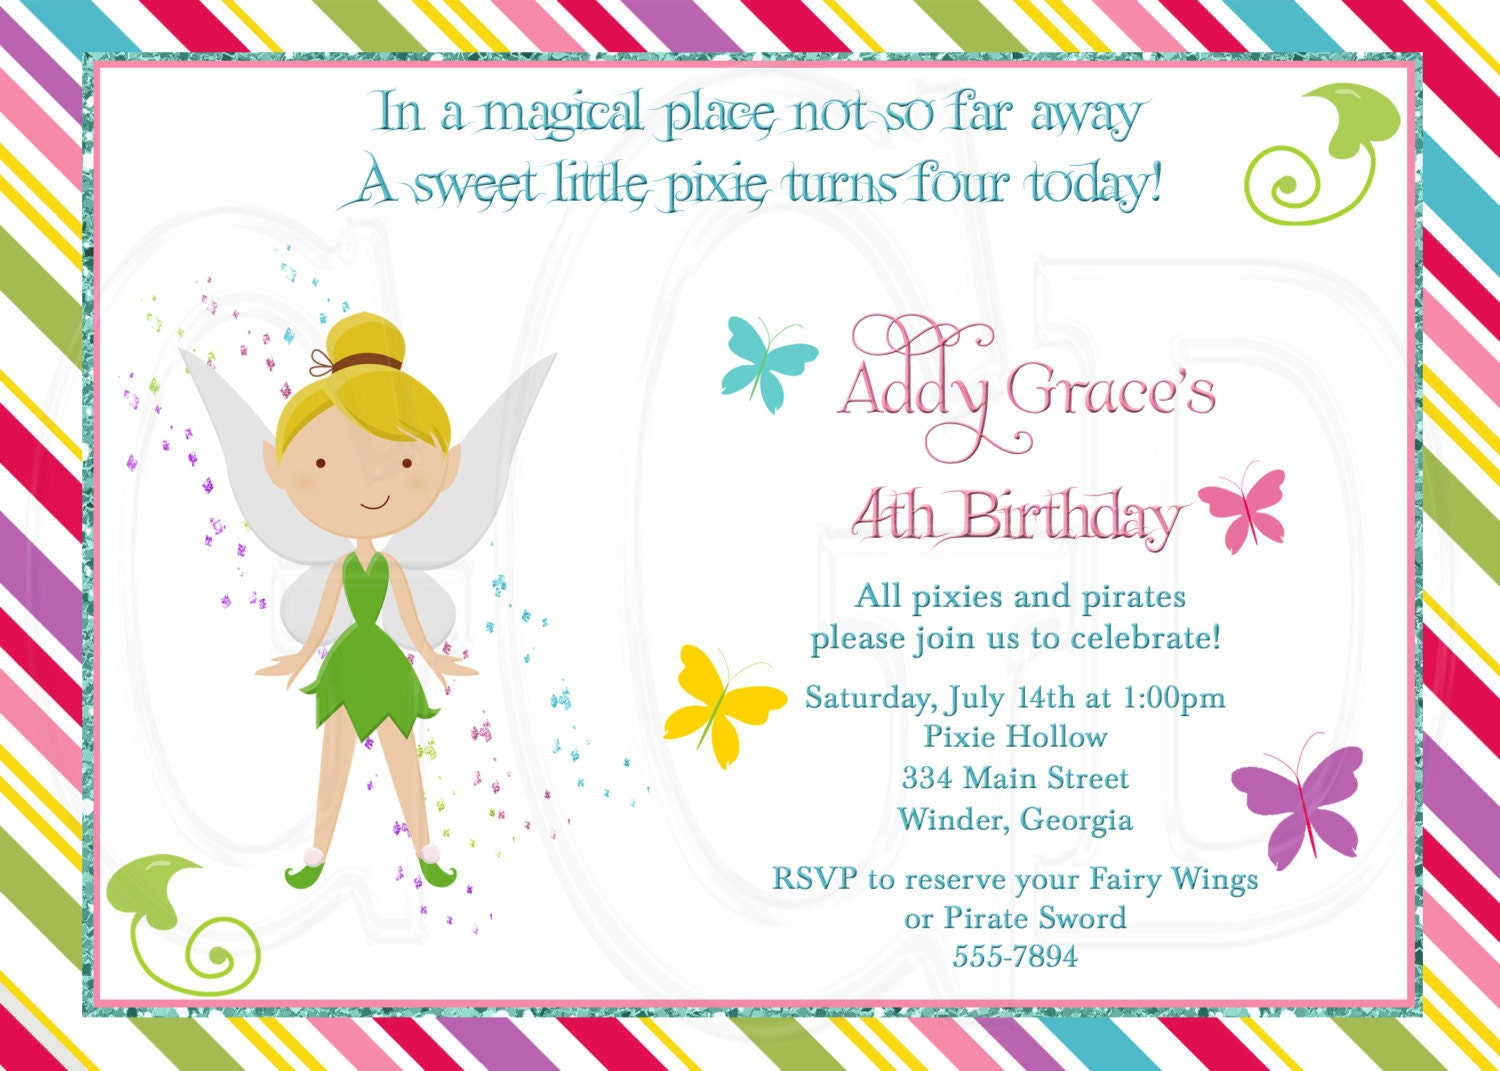 tinkerbell invitation inspired digital file printable tinkerbell invitation inspired digital file printable 128270zoom